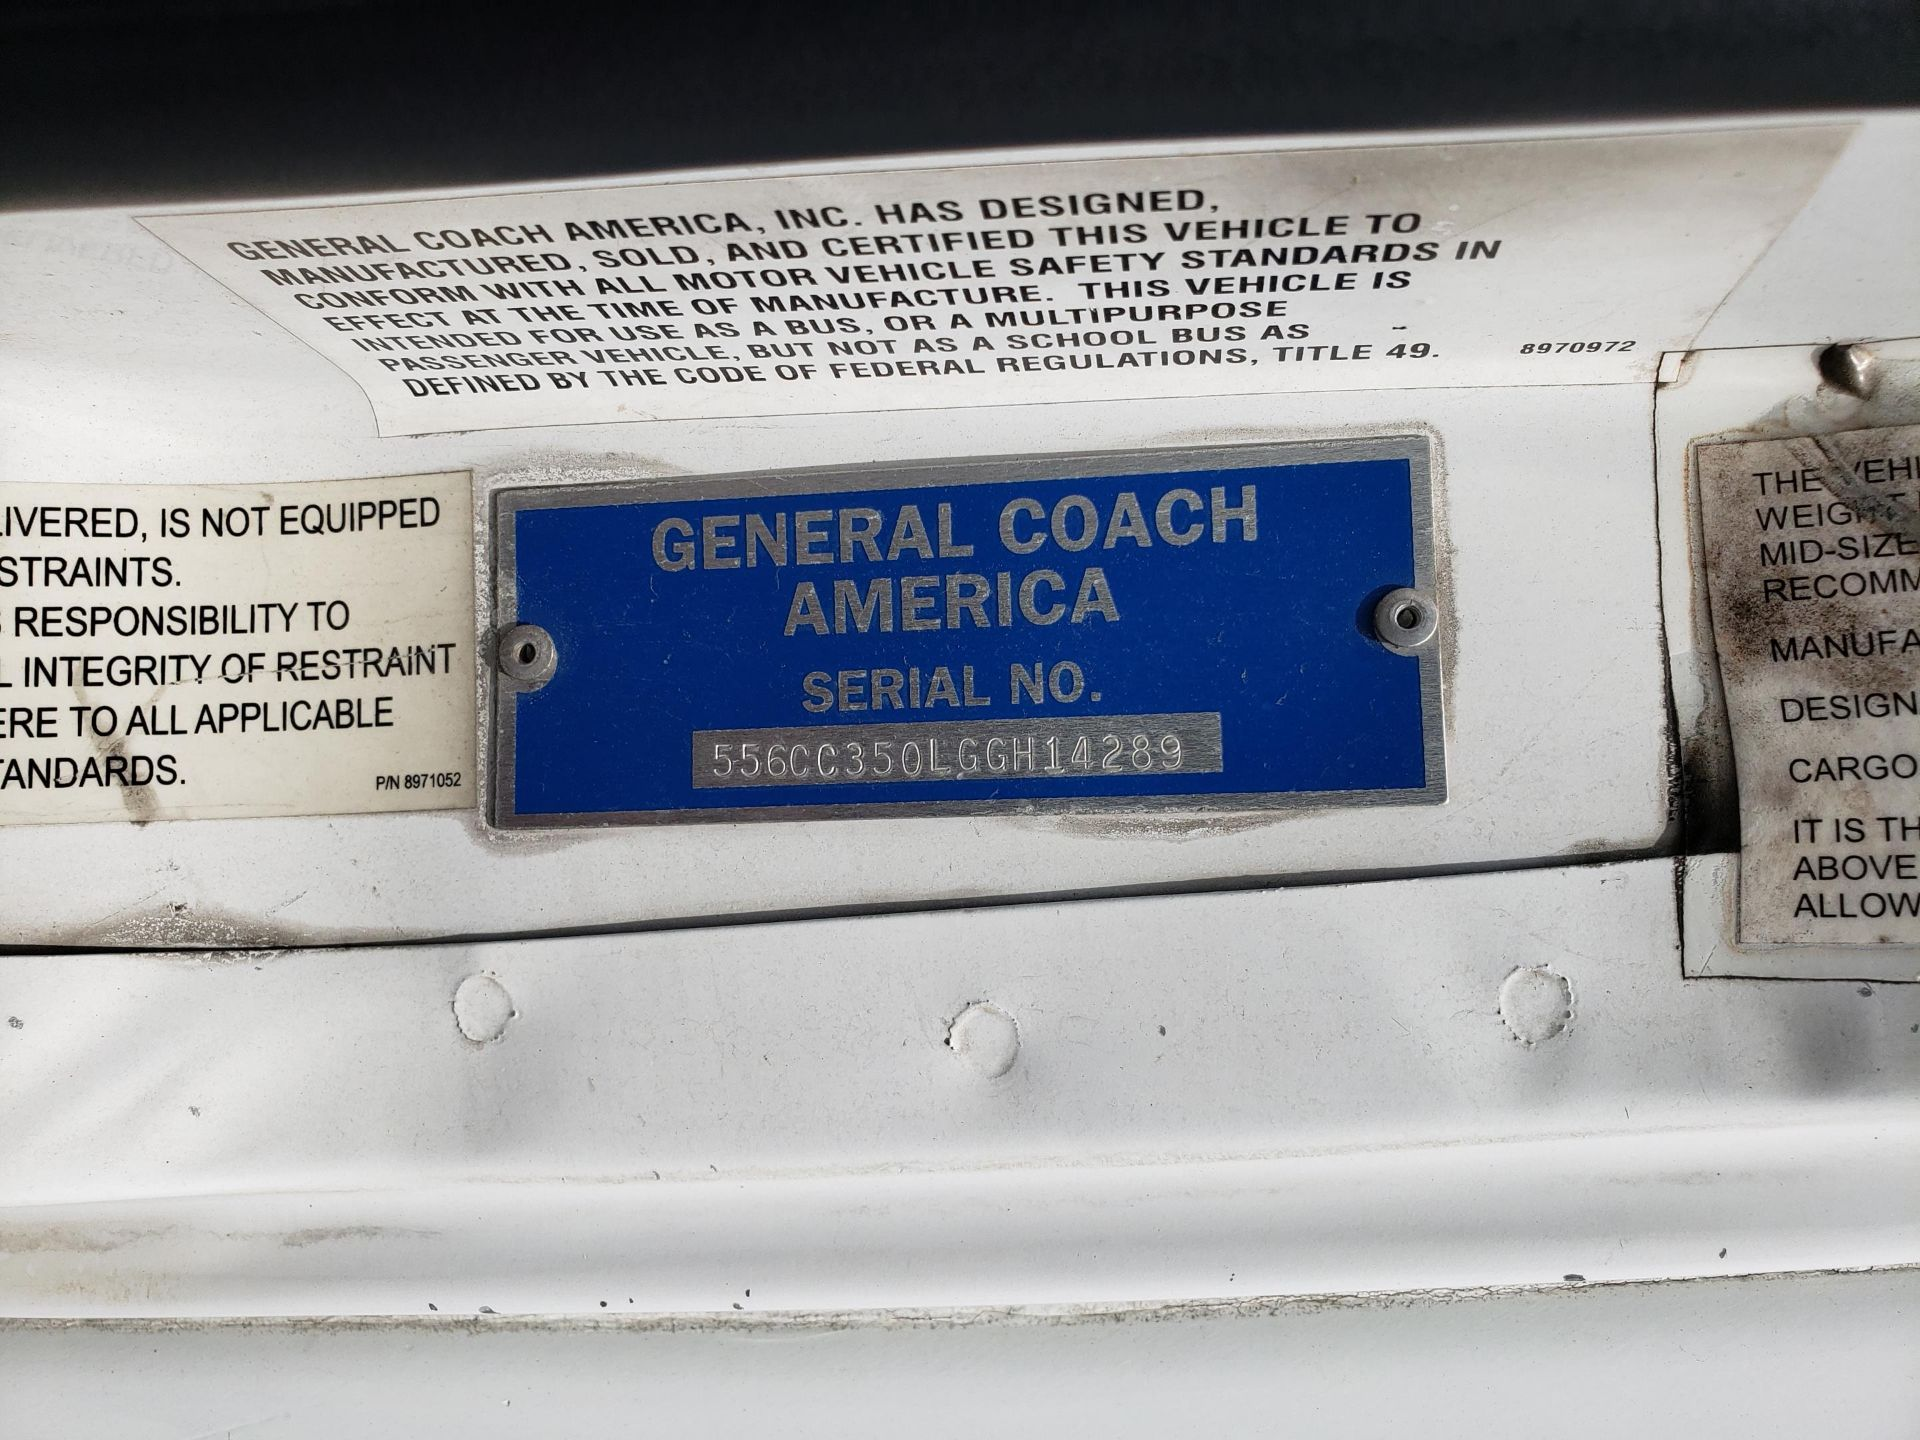 2006 Chevrolet C5500 30-Pass General Coach Champion Bus - Image 14 of 23